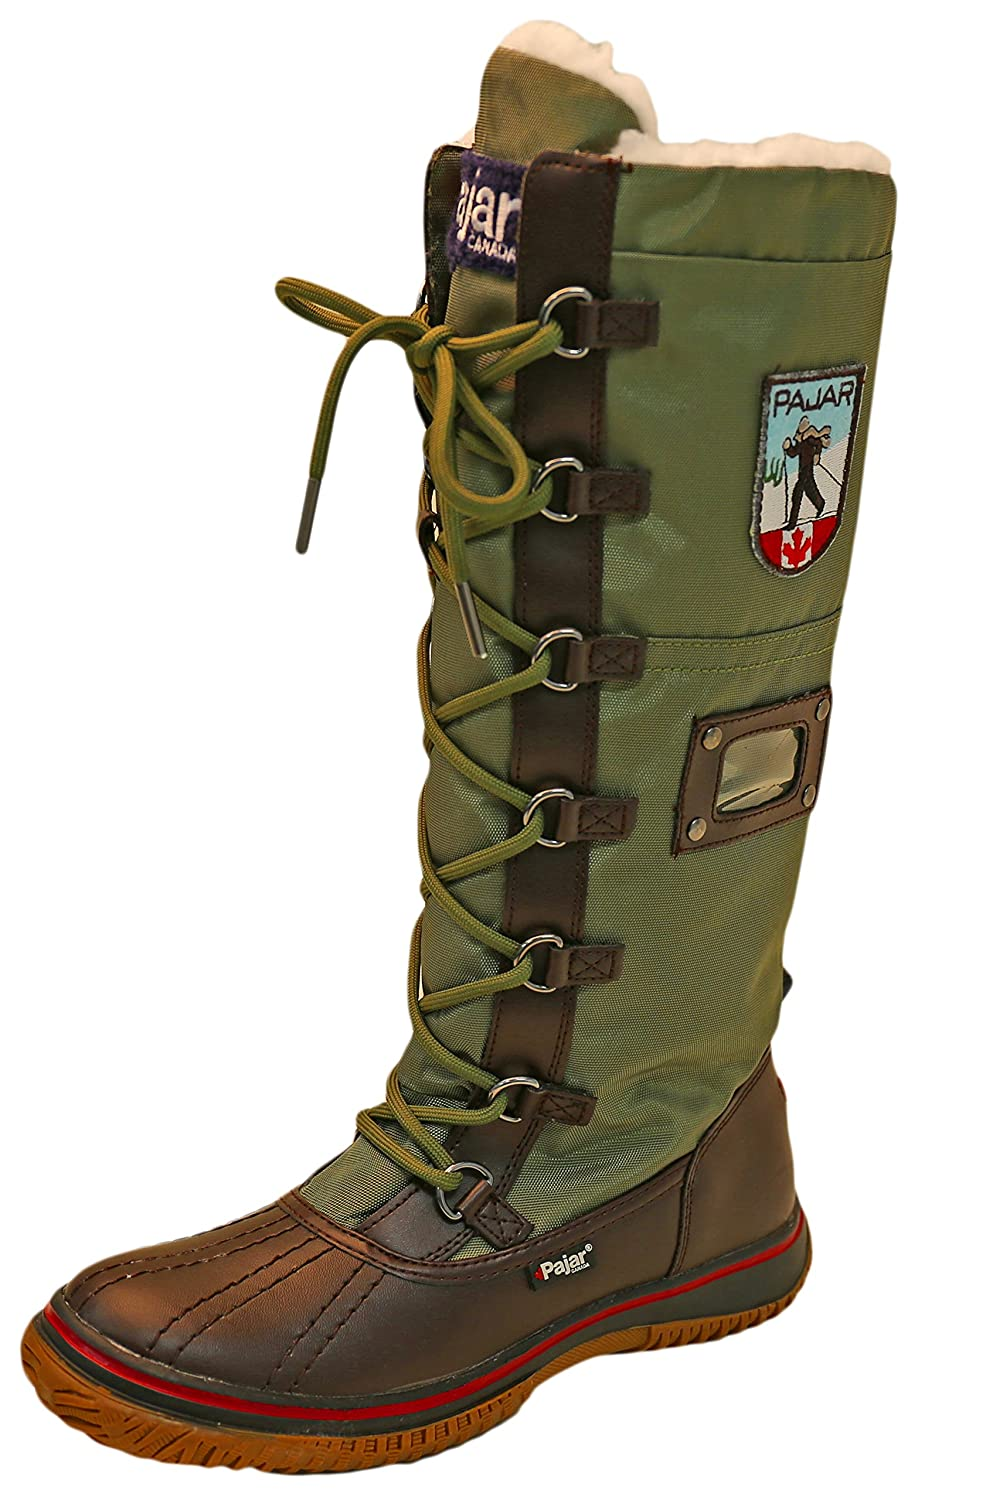 Pajar Women's Grip Boot B00I4ZYA2M 36 M EU/5-5.5 B(M) US|Dark Brown/Military Green